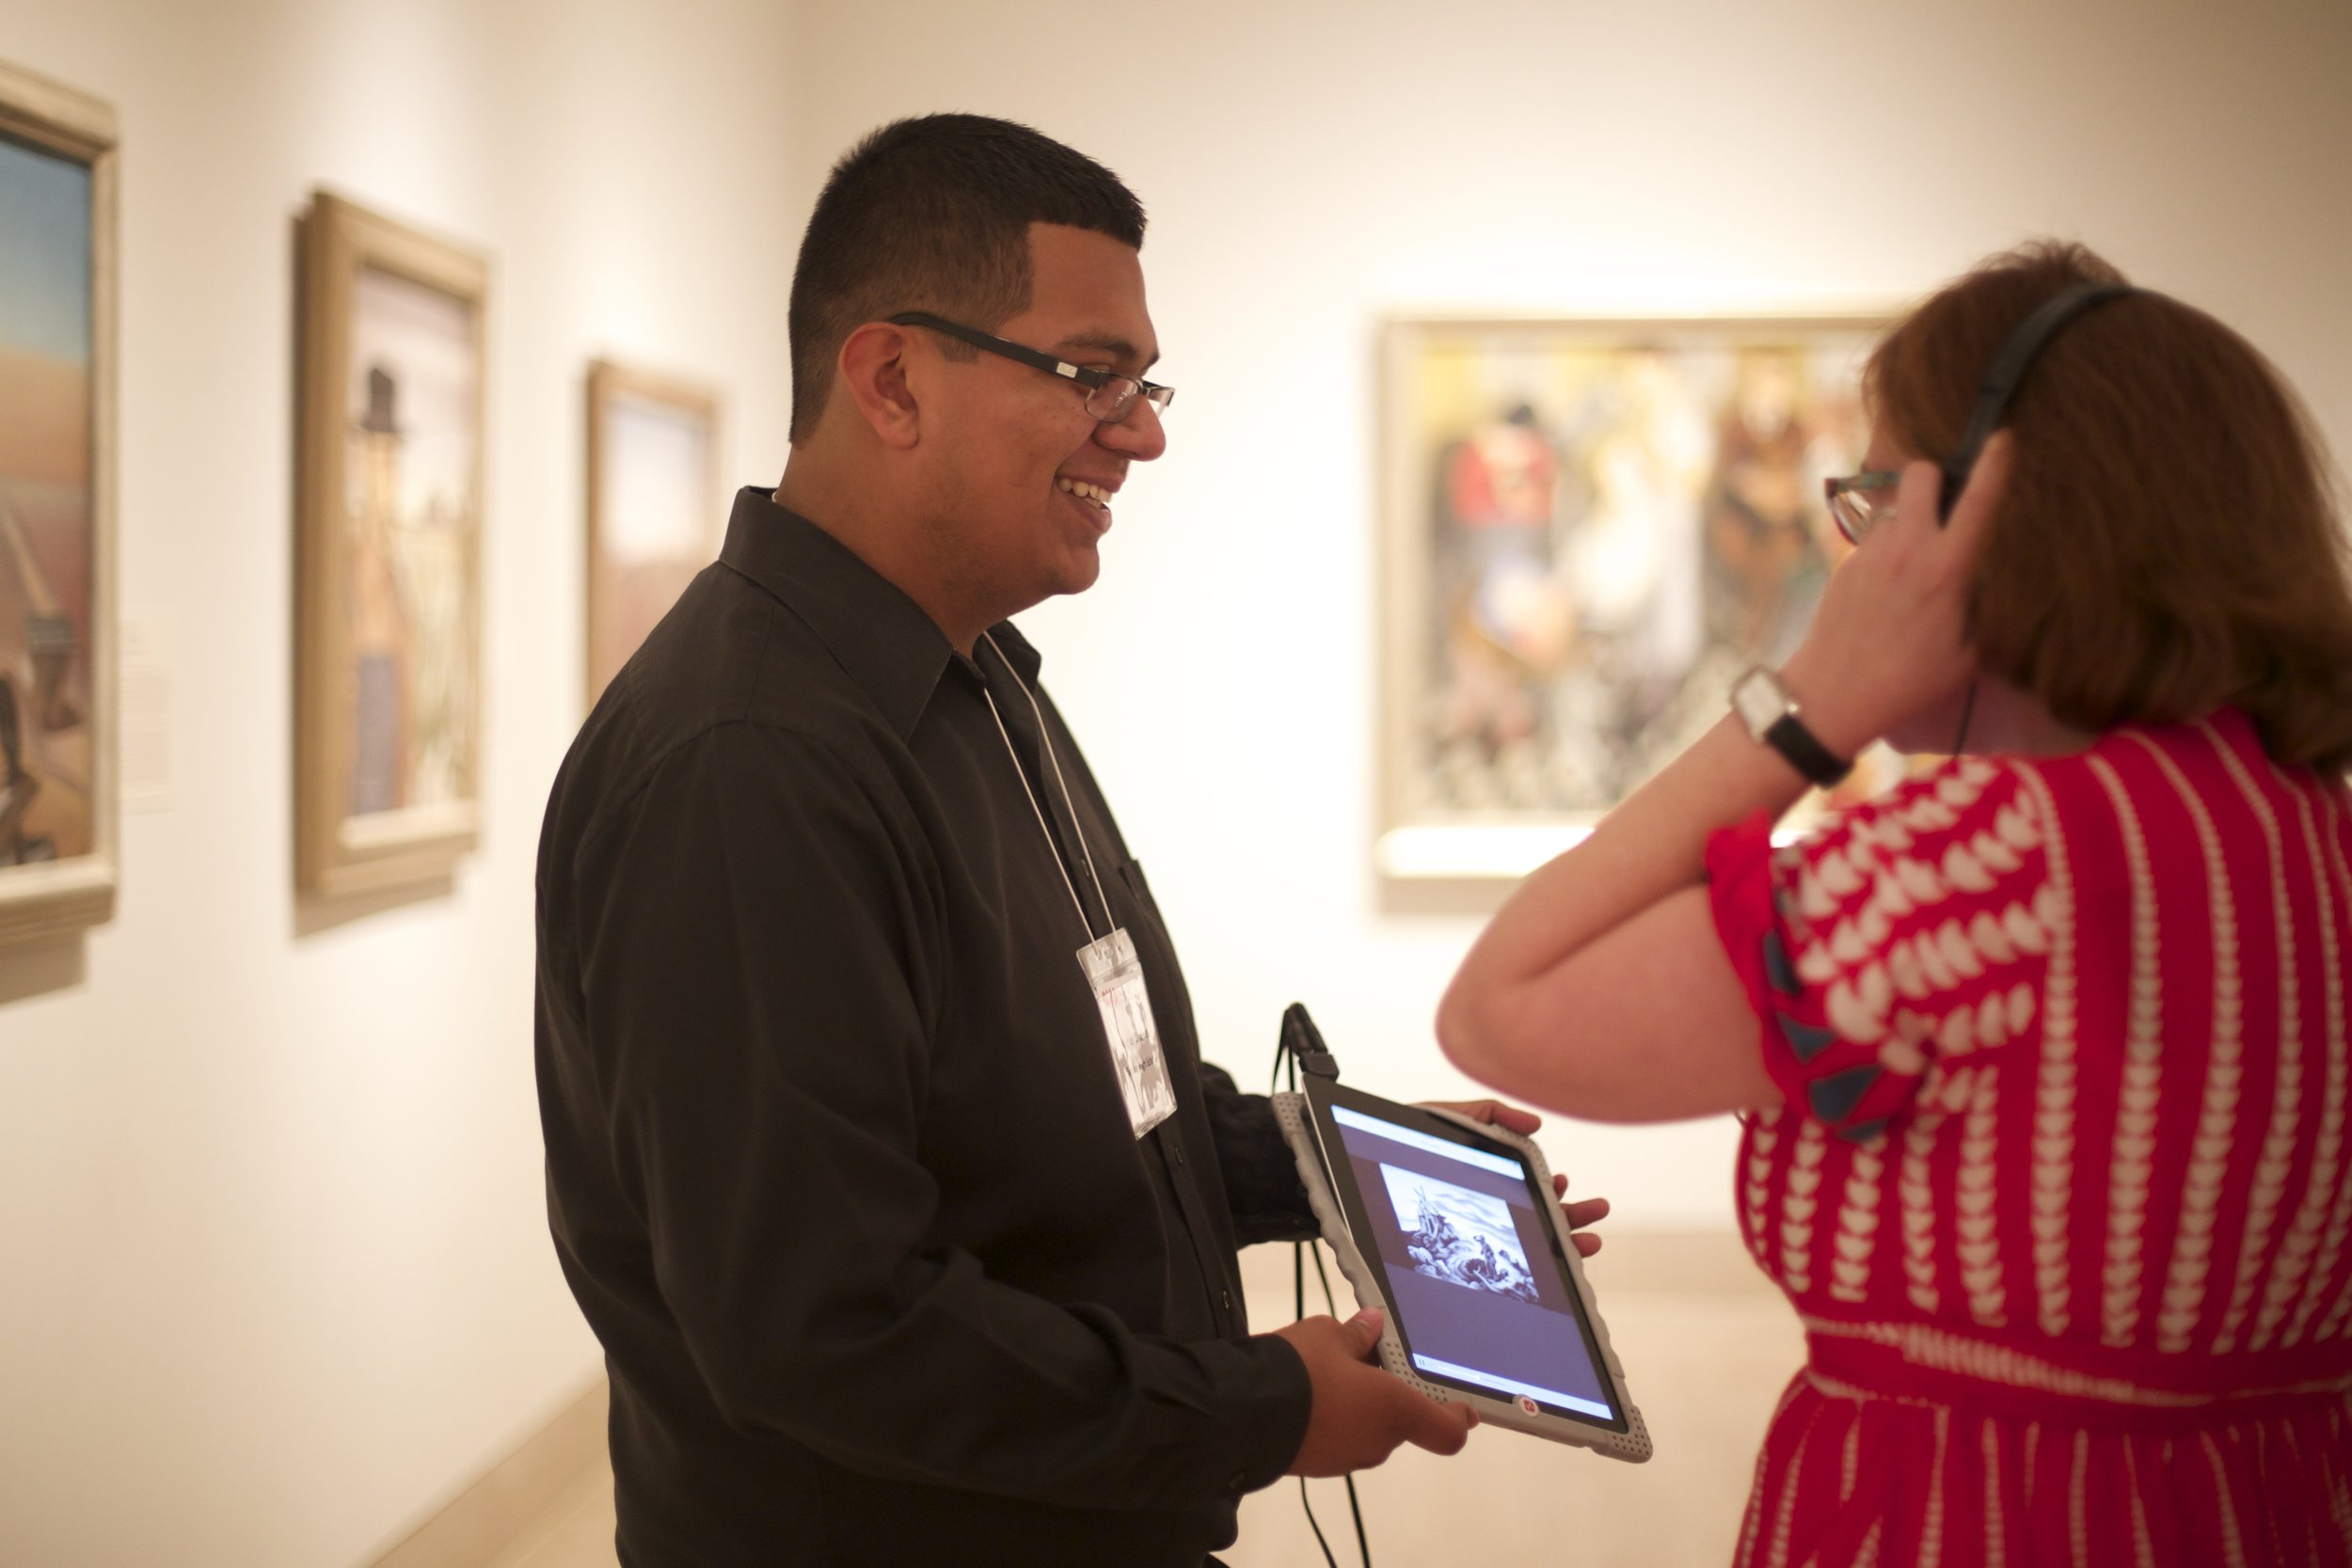 Miguel Mendez interacting with visitor at opening of MAP's Translating Culture 2 at Dallas Museum of Art. Photograph by Janeil Engelstad / Make Art with Purpose.